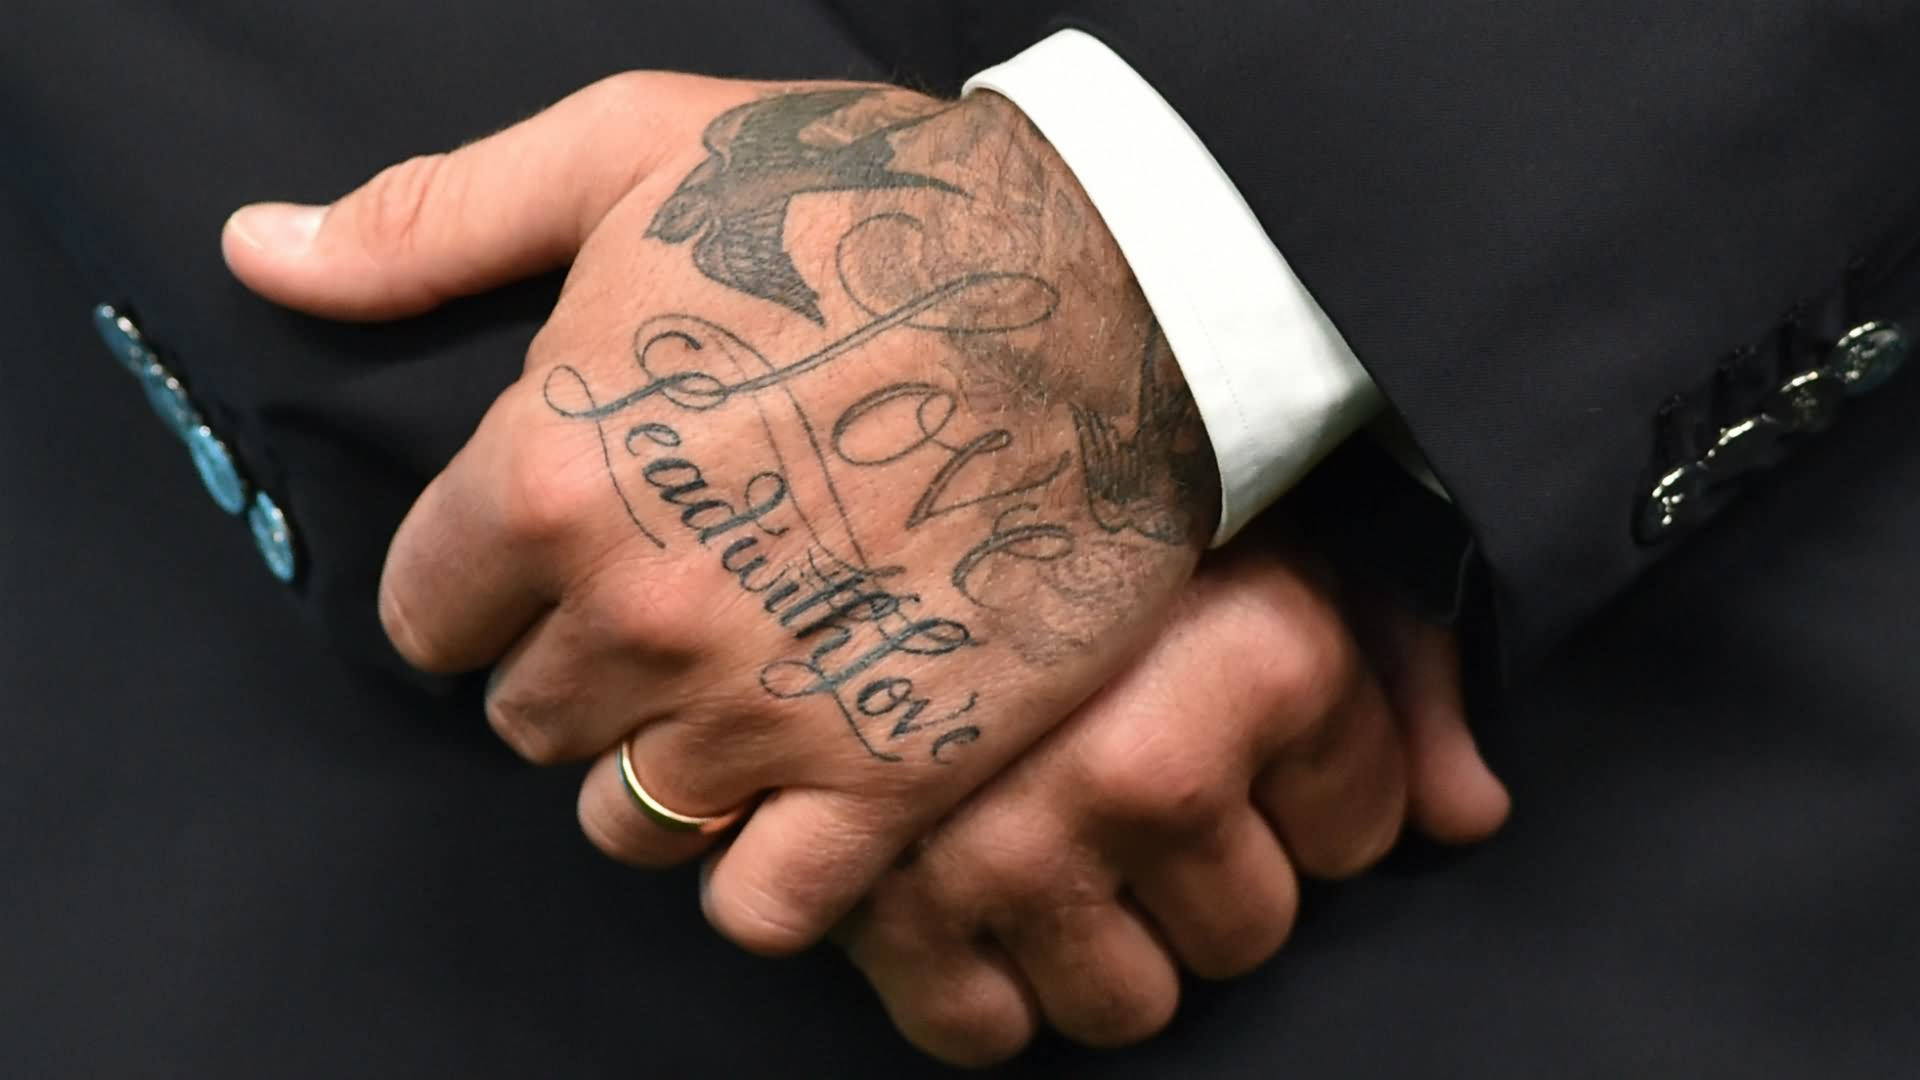 101 Best Hand Tattoos And Designs For Men Women